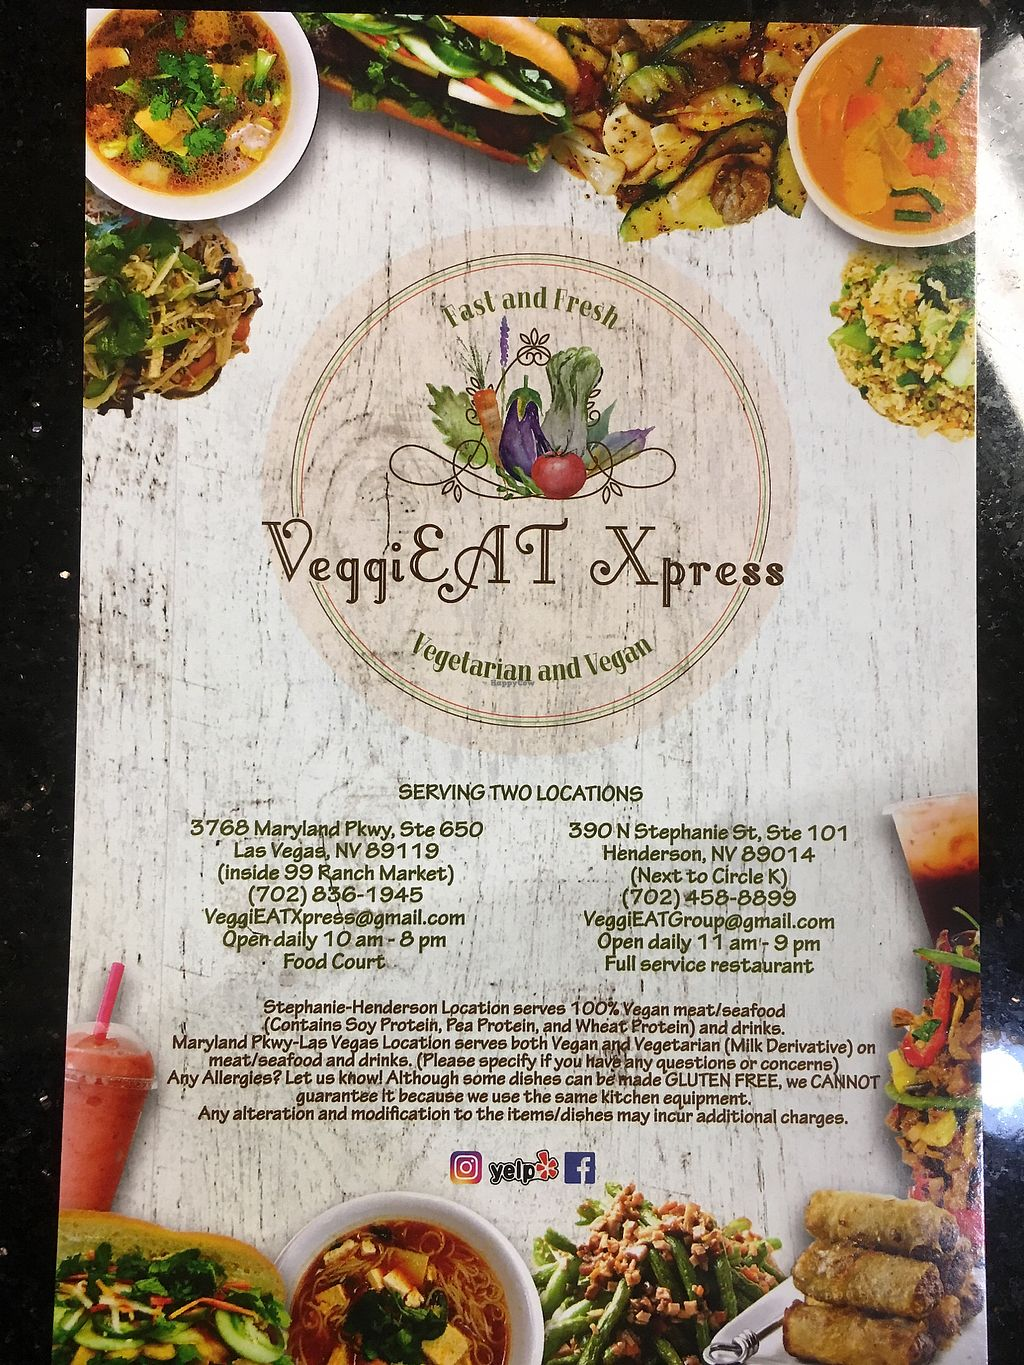 "Photo of VeggiEAT Xpress  by <a href=""/members/profile/Melynavarro"">Melynavarro</a> <br/>Menu <br/> December 19, 2017  - <a href='/contact/abuse/image/86667/337344'>Report</a>"